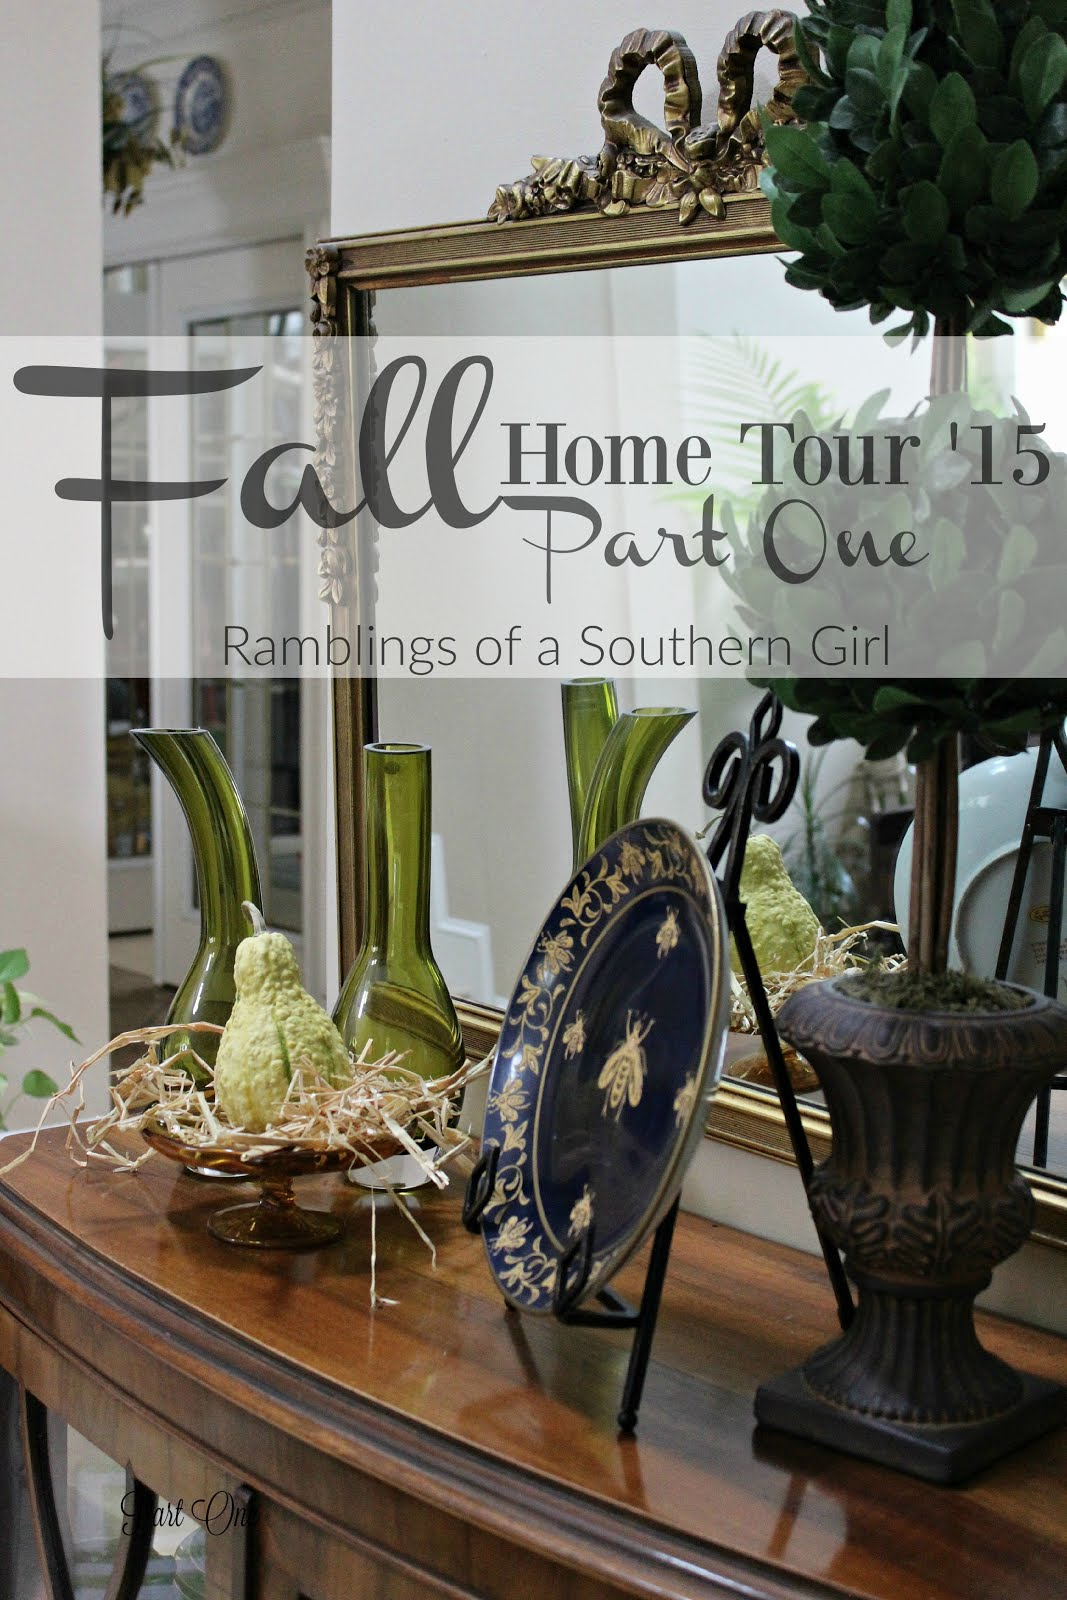 Fall Home Tour 2015 - Part One